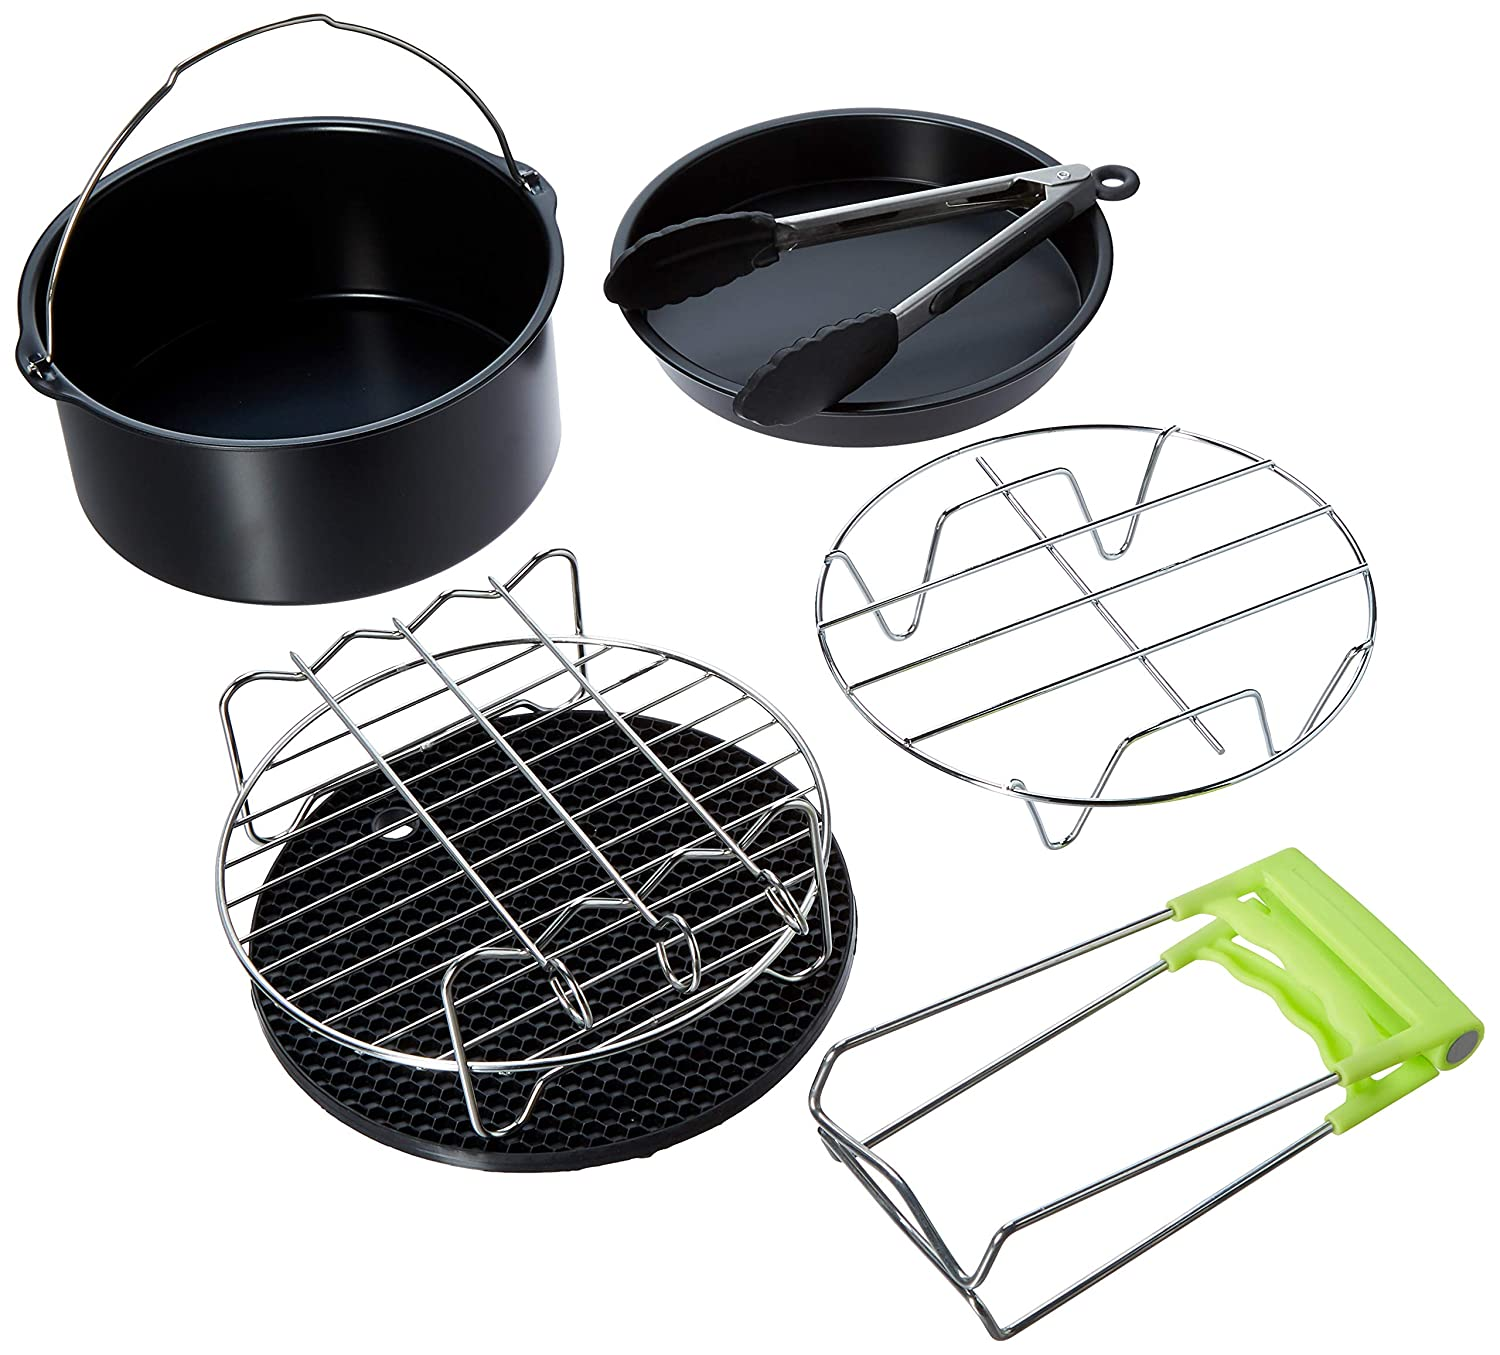 Skewer Rack Cake Barrel Pizza Pan Air Fryer Accessories,for Phillips Air Fryer and Gowise Air Fryer Deep Fryer Universal Metal holder Fit all 3.7QT-5.3QT-5.8QT 7 Inch Silicone Mat